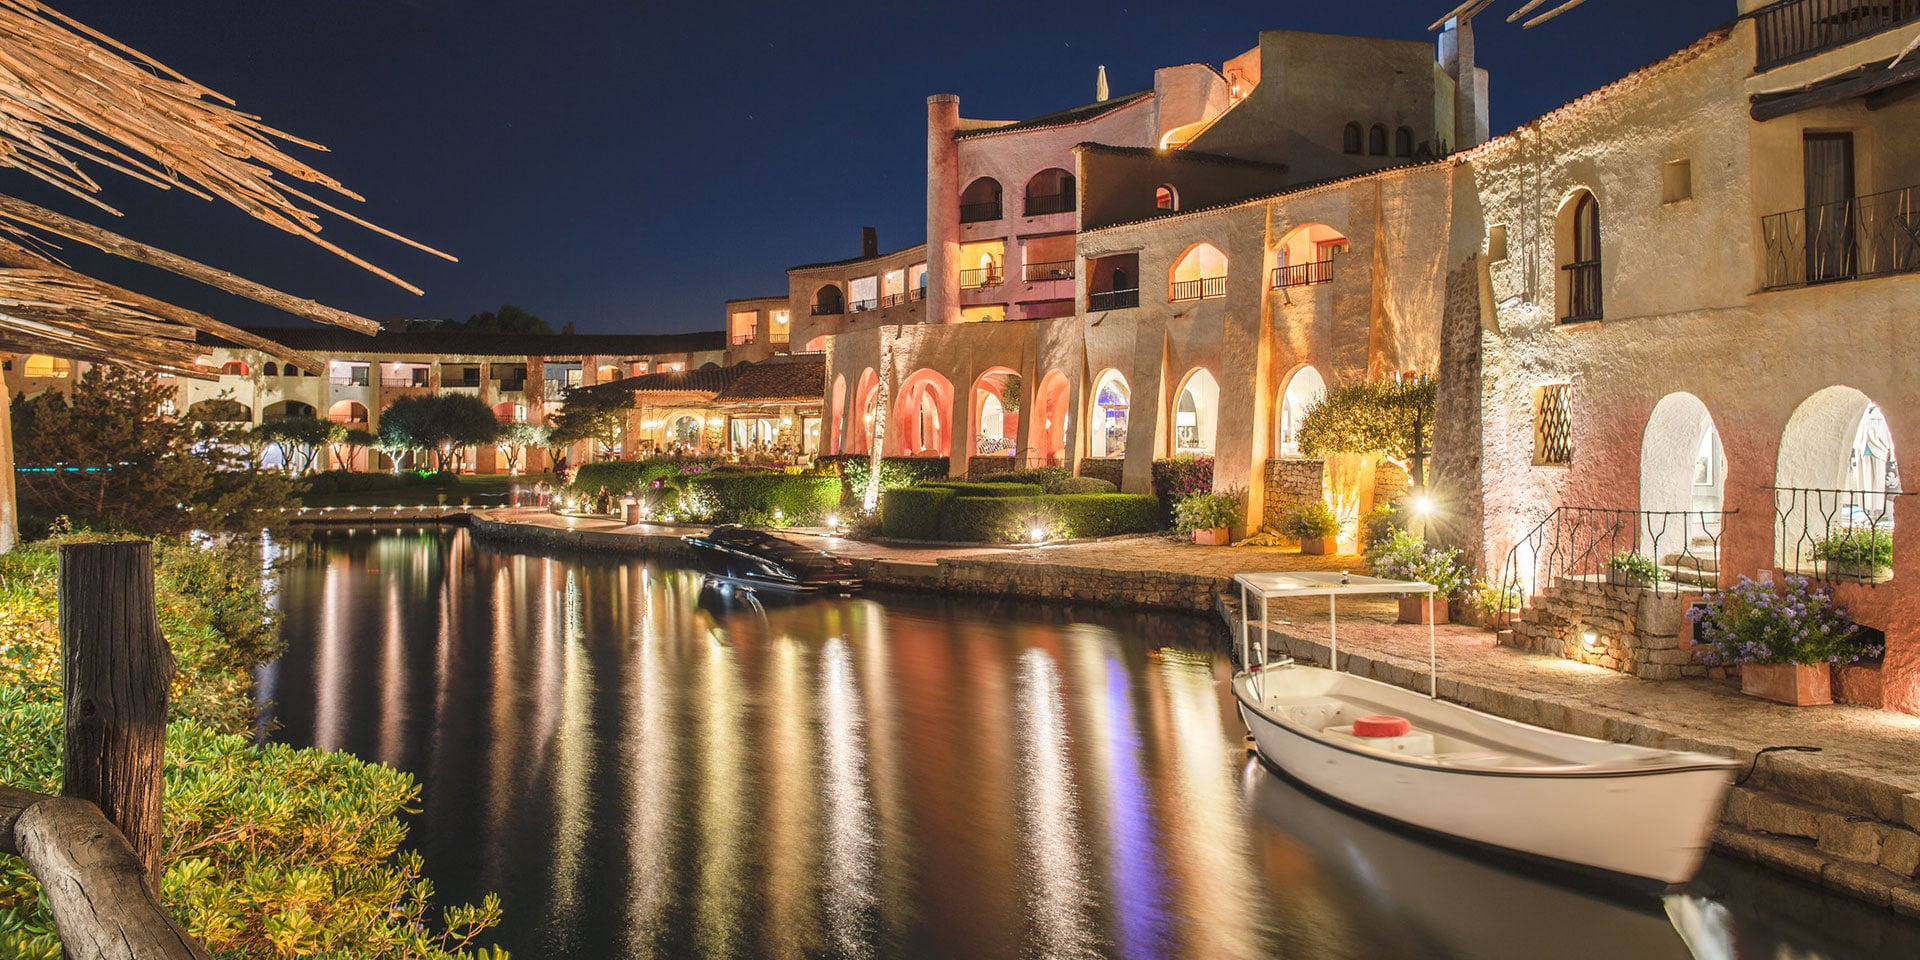 Costa Smeralda heats up after dark. (Photo: Marriott International)